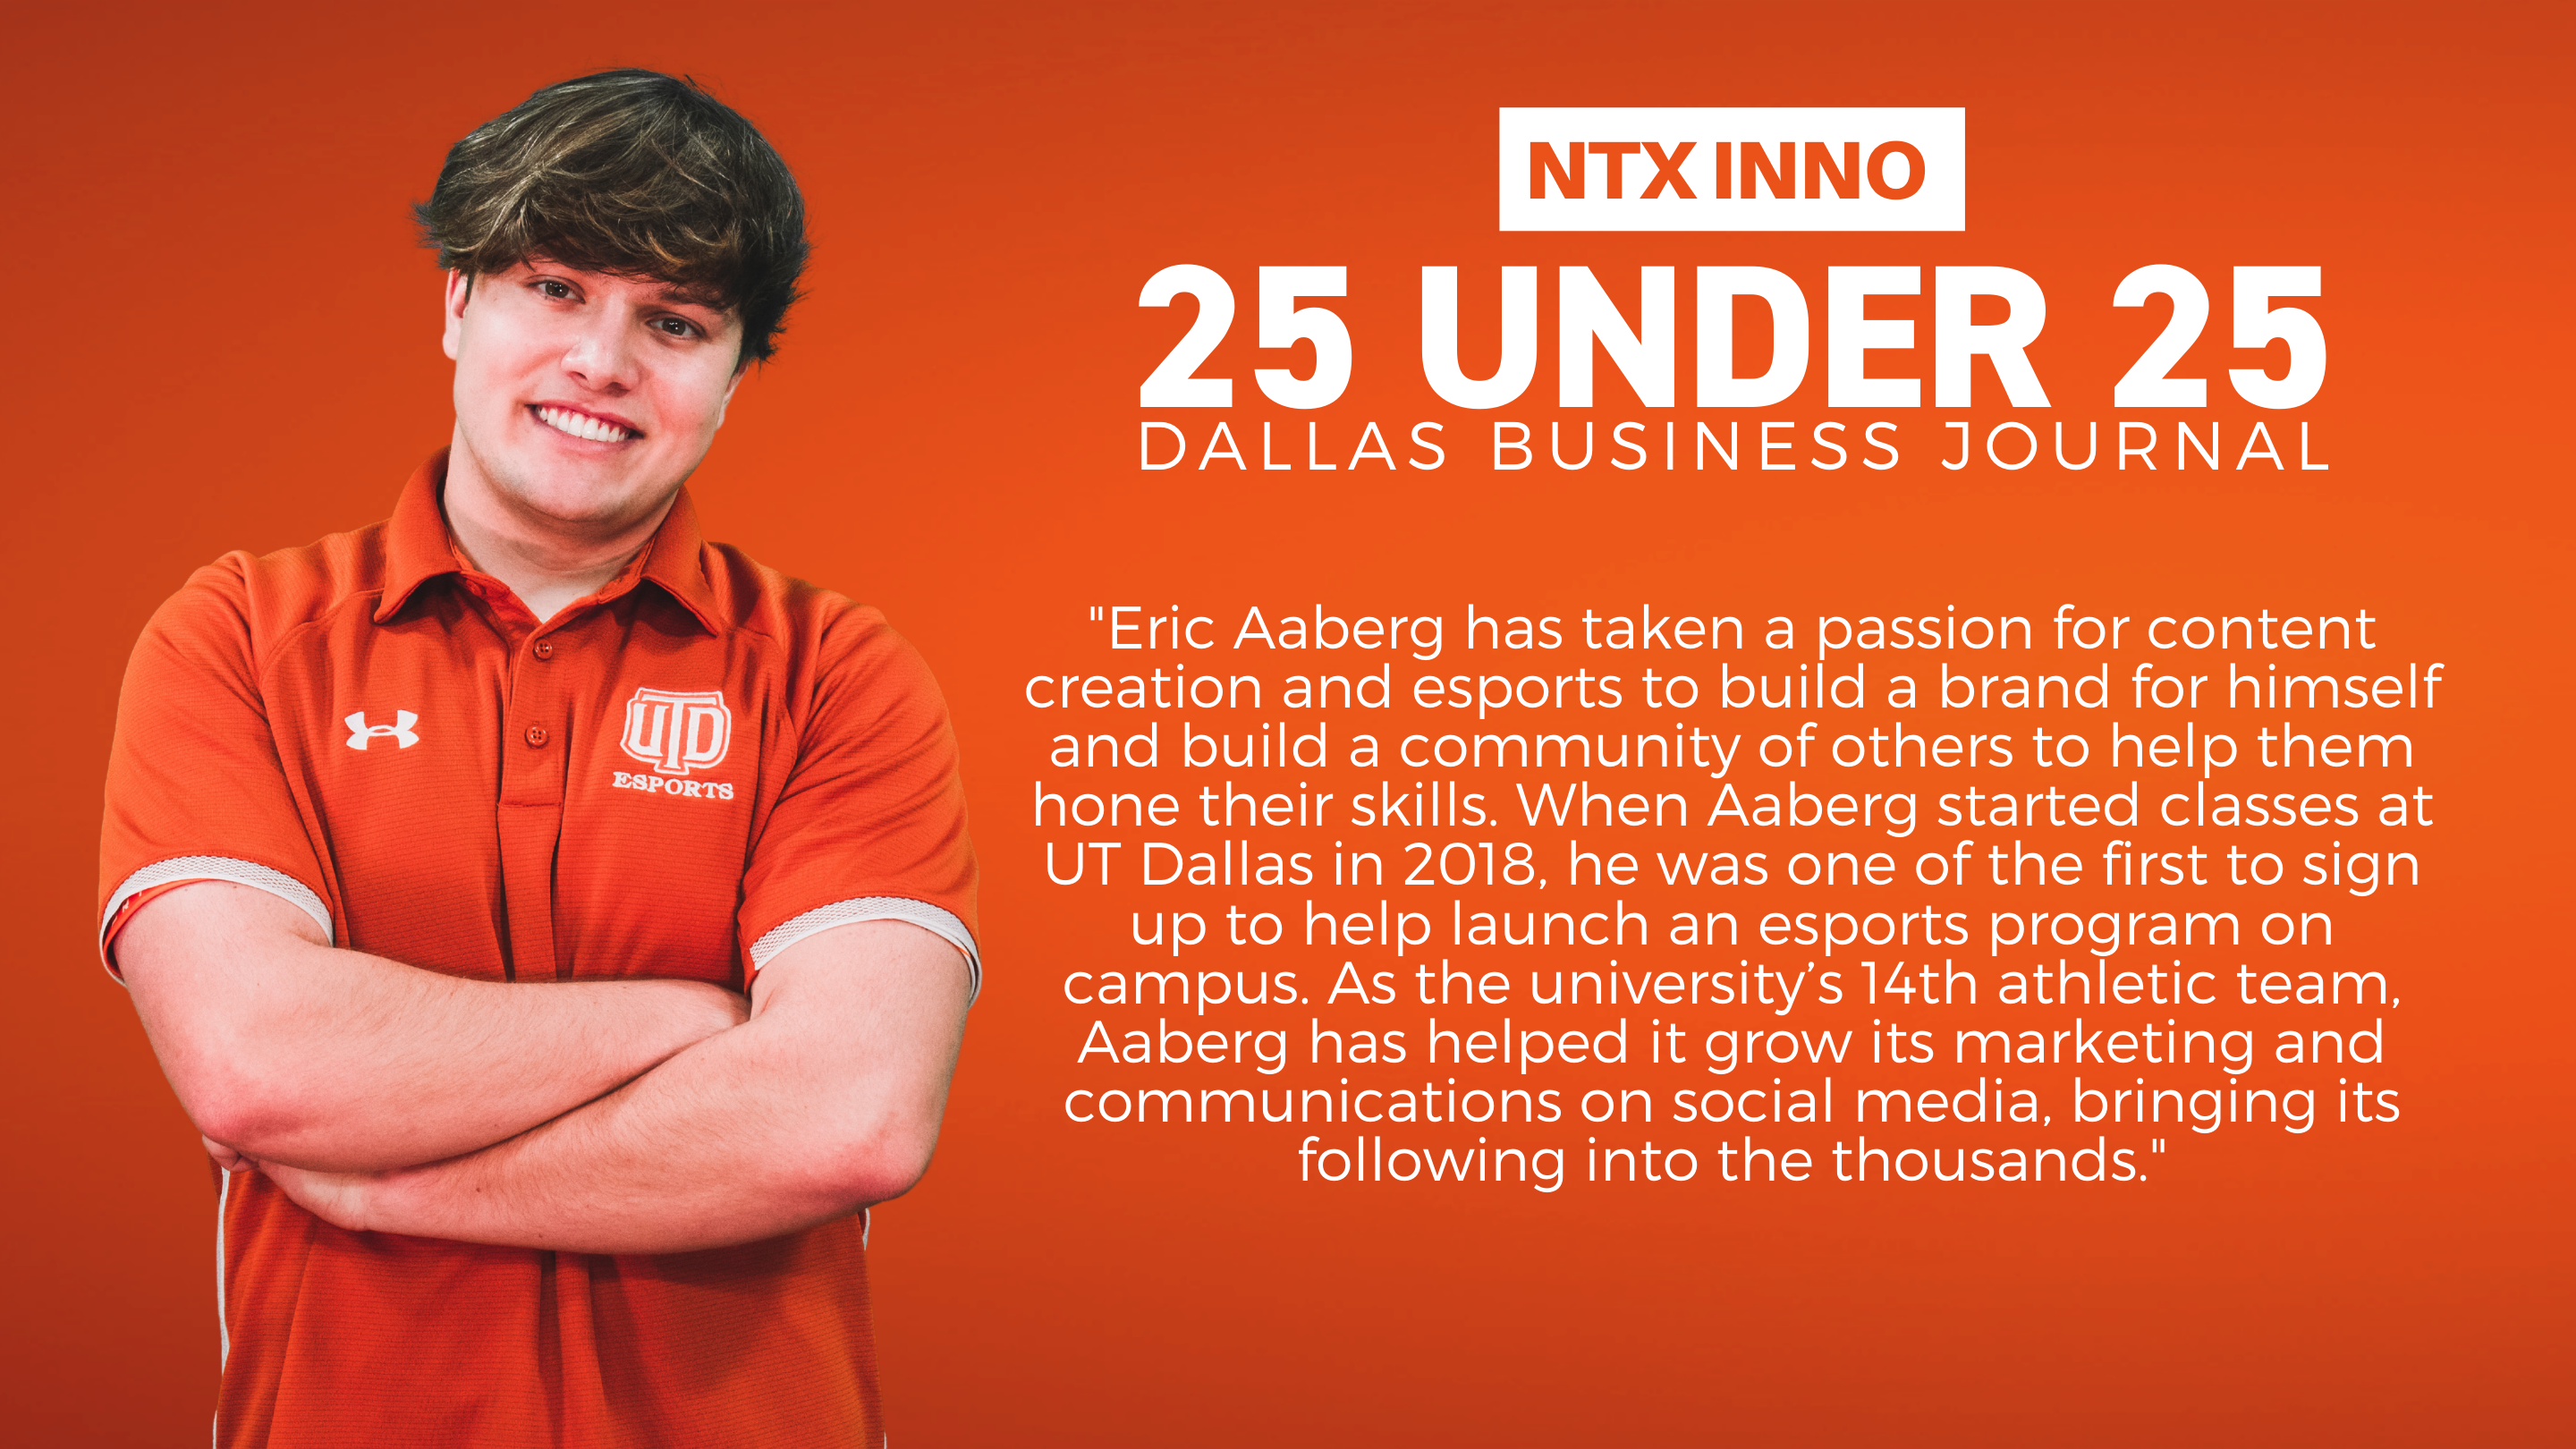 Eric Aaberg Named NTX INNO 25 Under 25